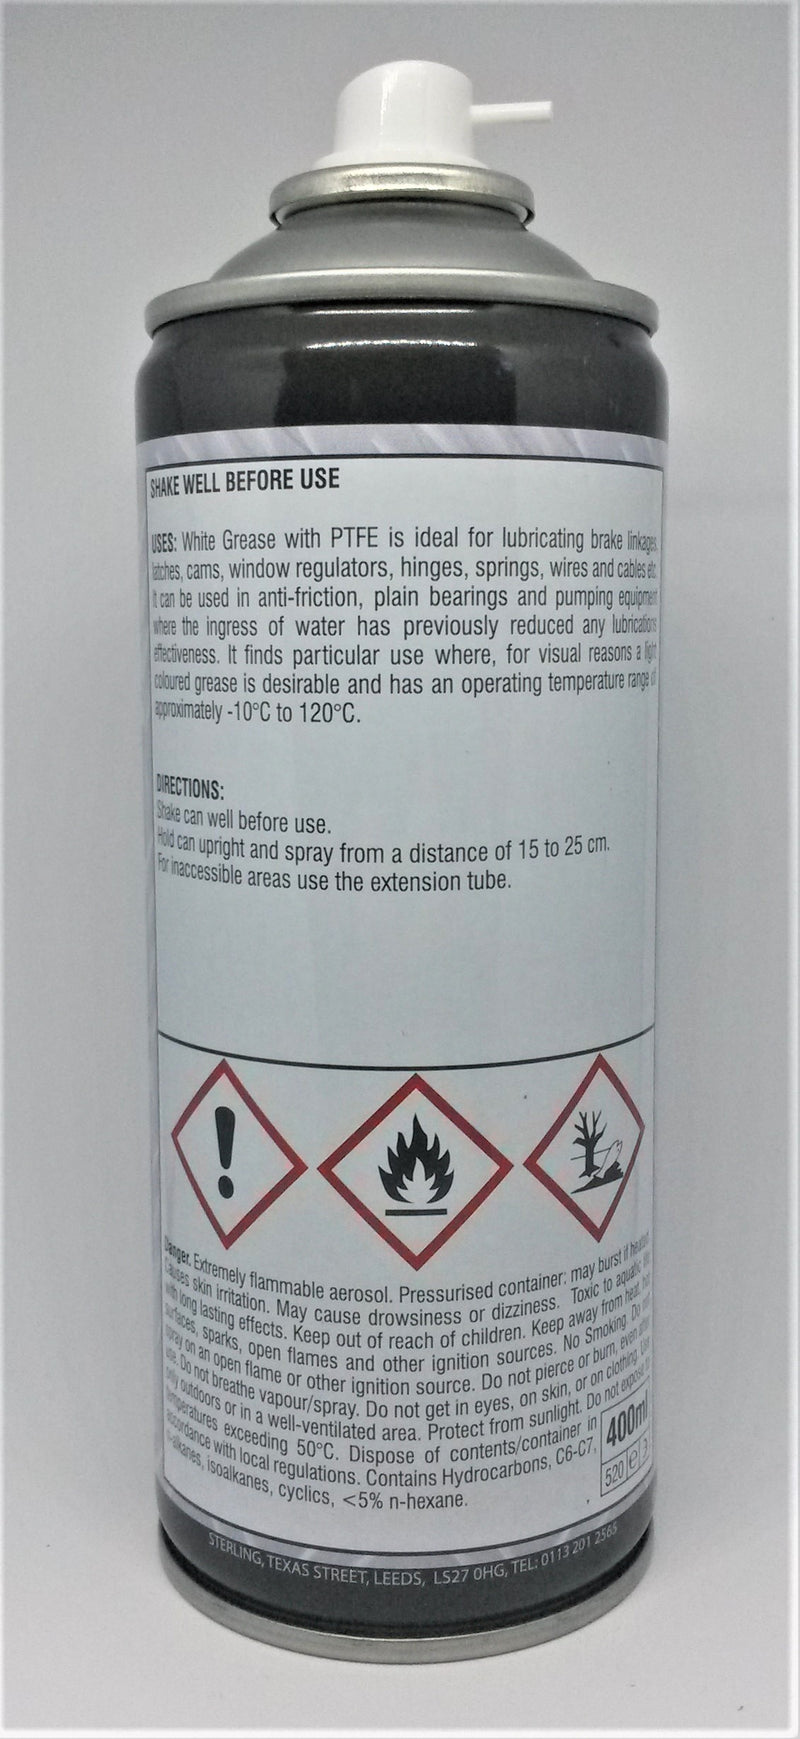 rear of can with directions for use